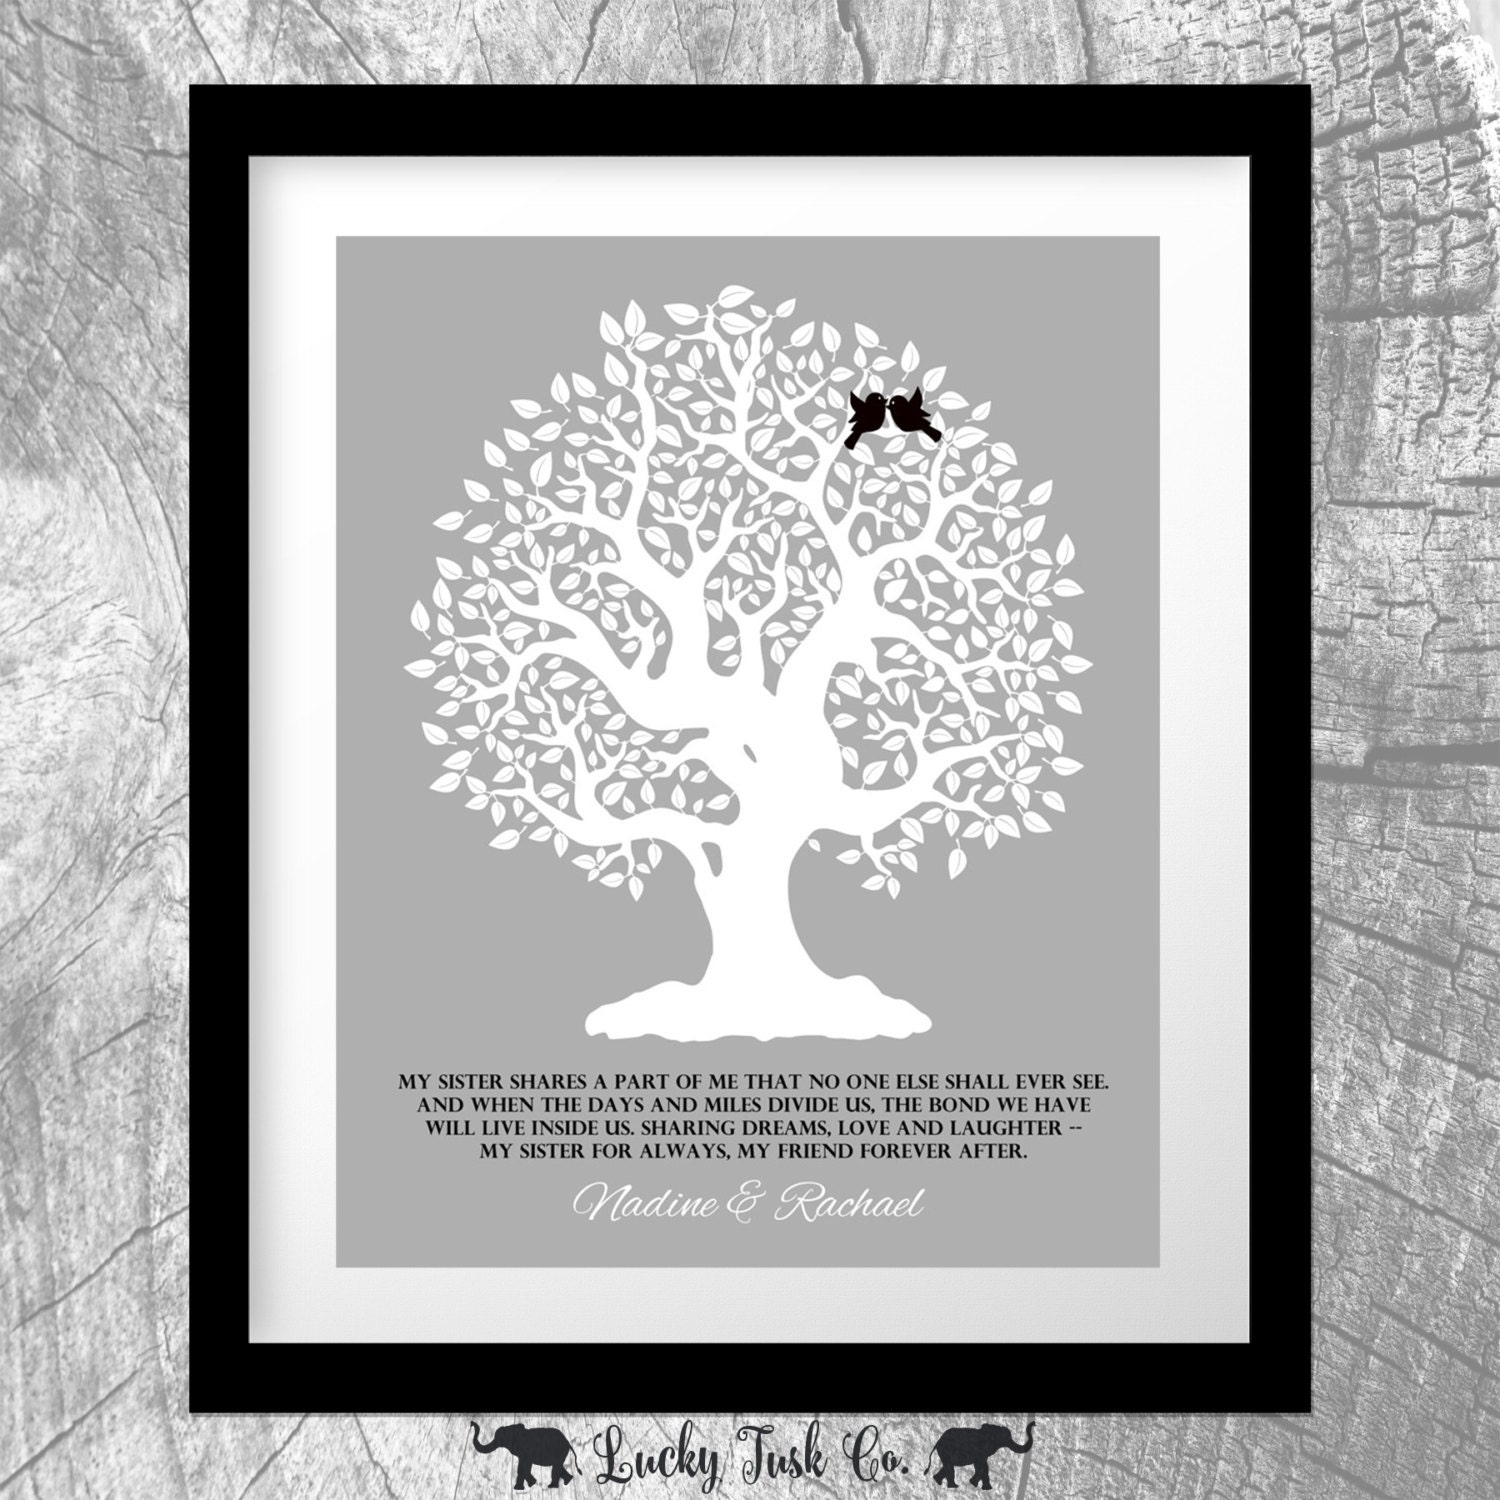 Wedding Gift For Sorority Sister : Personalized Gift For Sister Shares A Part of Me Gift From